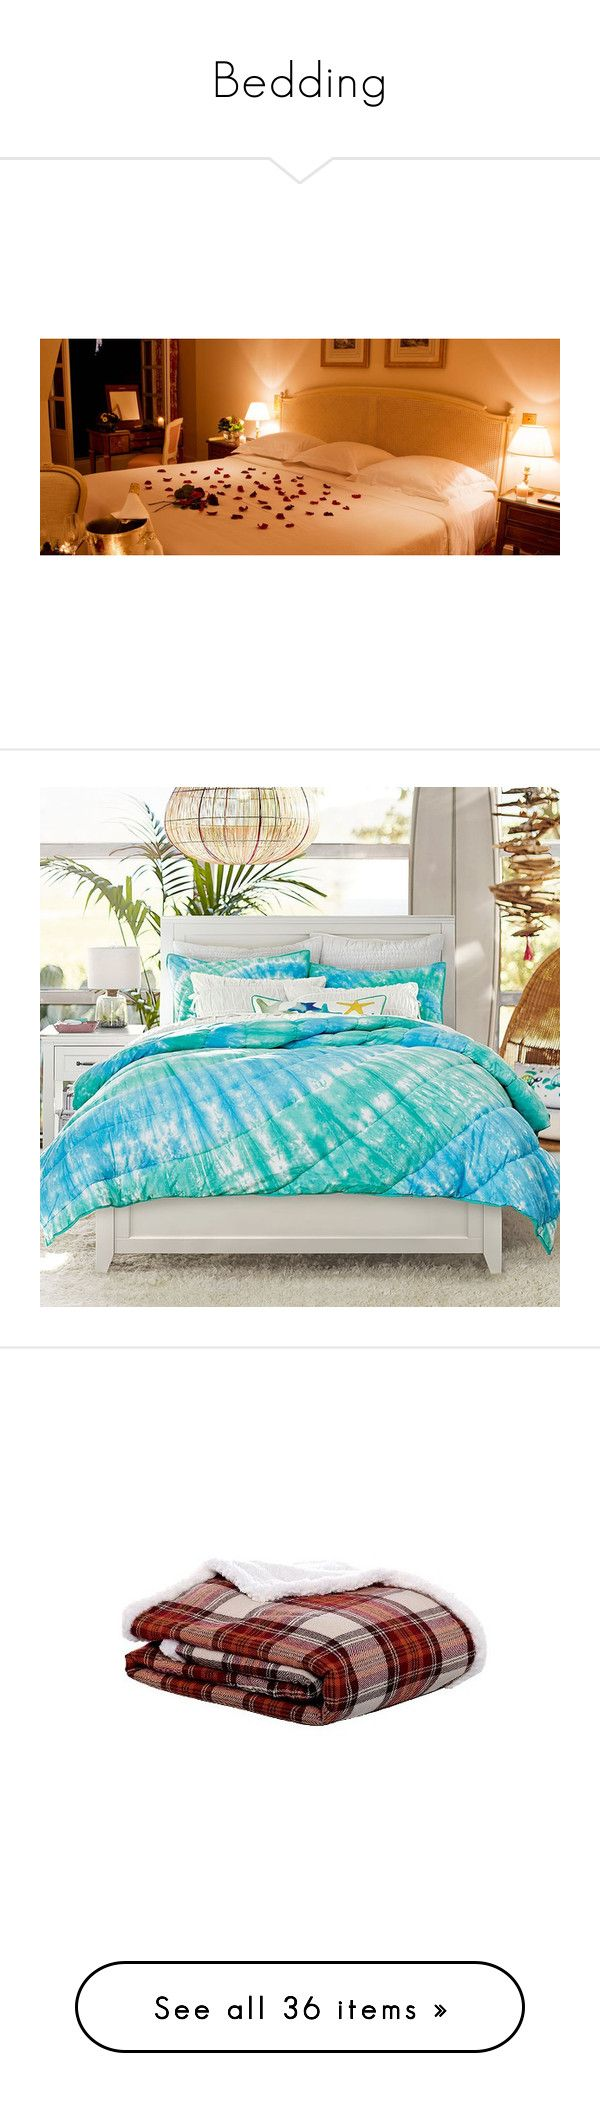 Bedding by ashleynicoleblack on Polyvore featuring polyvore, women's fashion, clothing, home, bed & bath, bedding, quilts, full size storage bed, double bed, queen headboard, queen storage headboard, full bed, blankets, flannel throw, sherpa throw, flannel blanket, sherpa blanket, plaid blanket, bed accessories, taupe bedding, brown pillow shams, tan bedding, brown shams, brown bedding, leopard bedding, sherpa throw blanket, sherpa fleece blanket, sherpa fleece throw, leopard throw blanket…